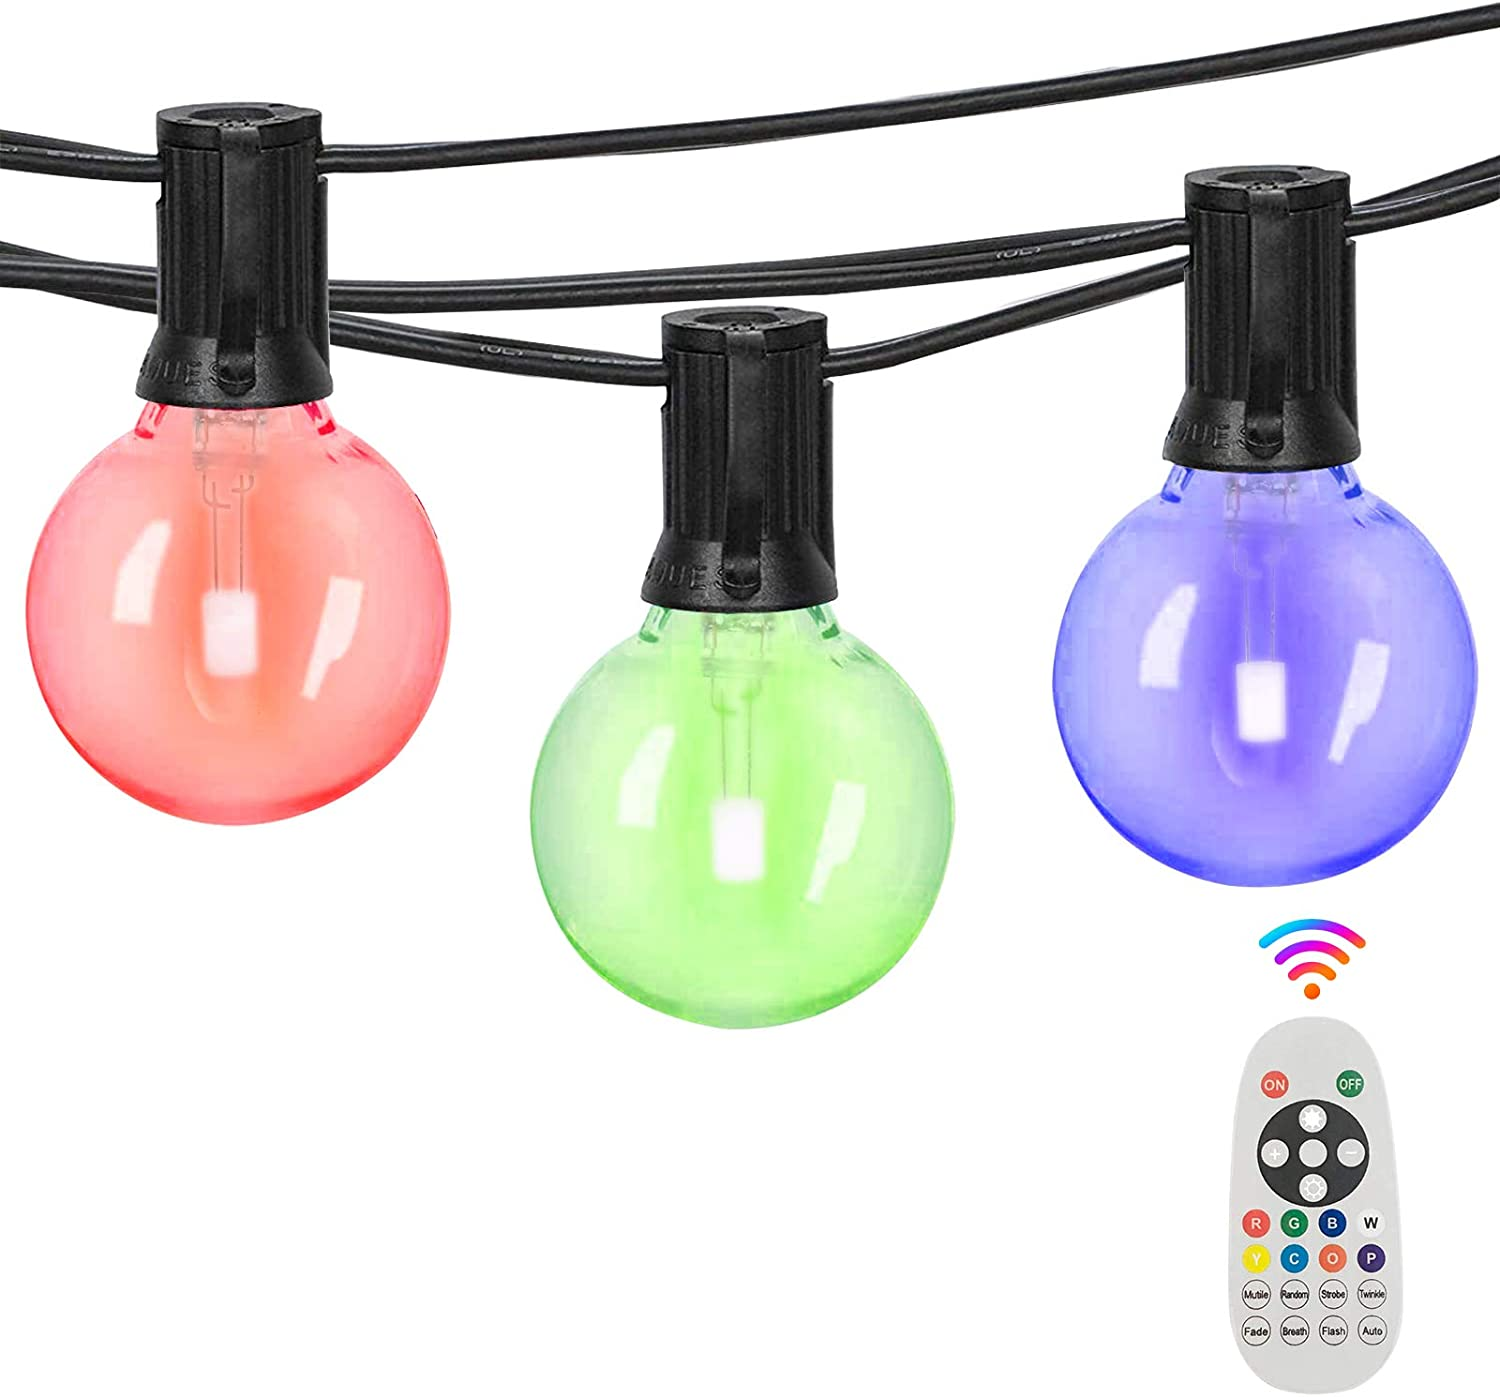 Svater Multicolor Outdoor String Lights,50ft with 25pcs E12 Socket,26pcs shatterproof G40 Bulb,RGB dimmable String Lights Remote Control,Low Voltage Patio Lights,ETL List,IP45 Waterproof